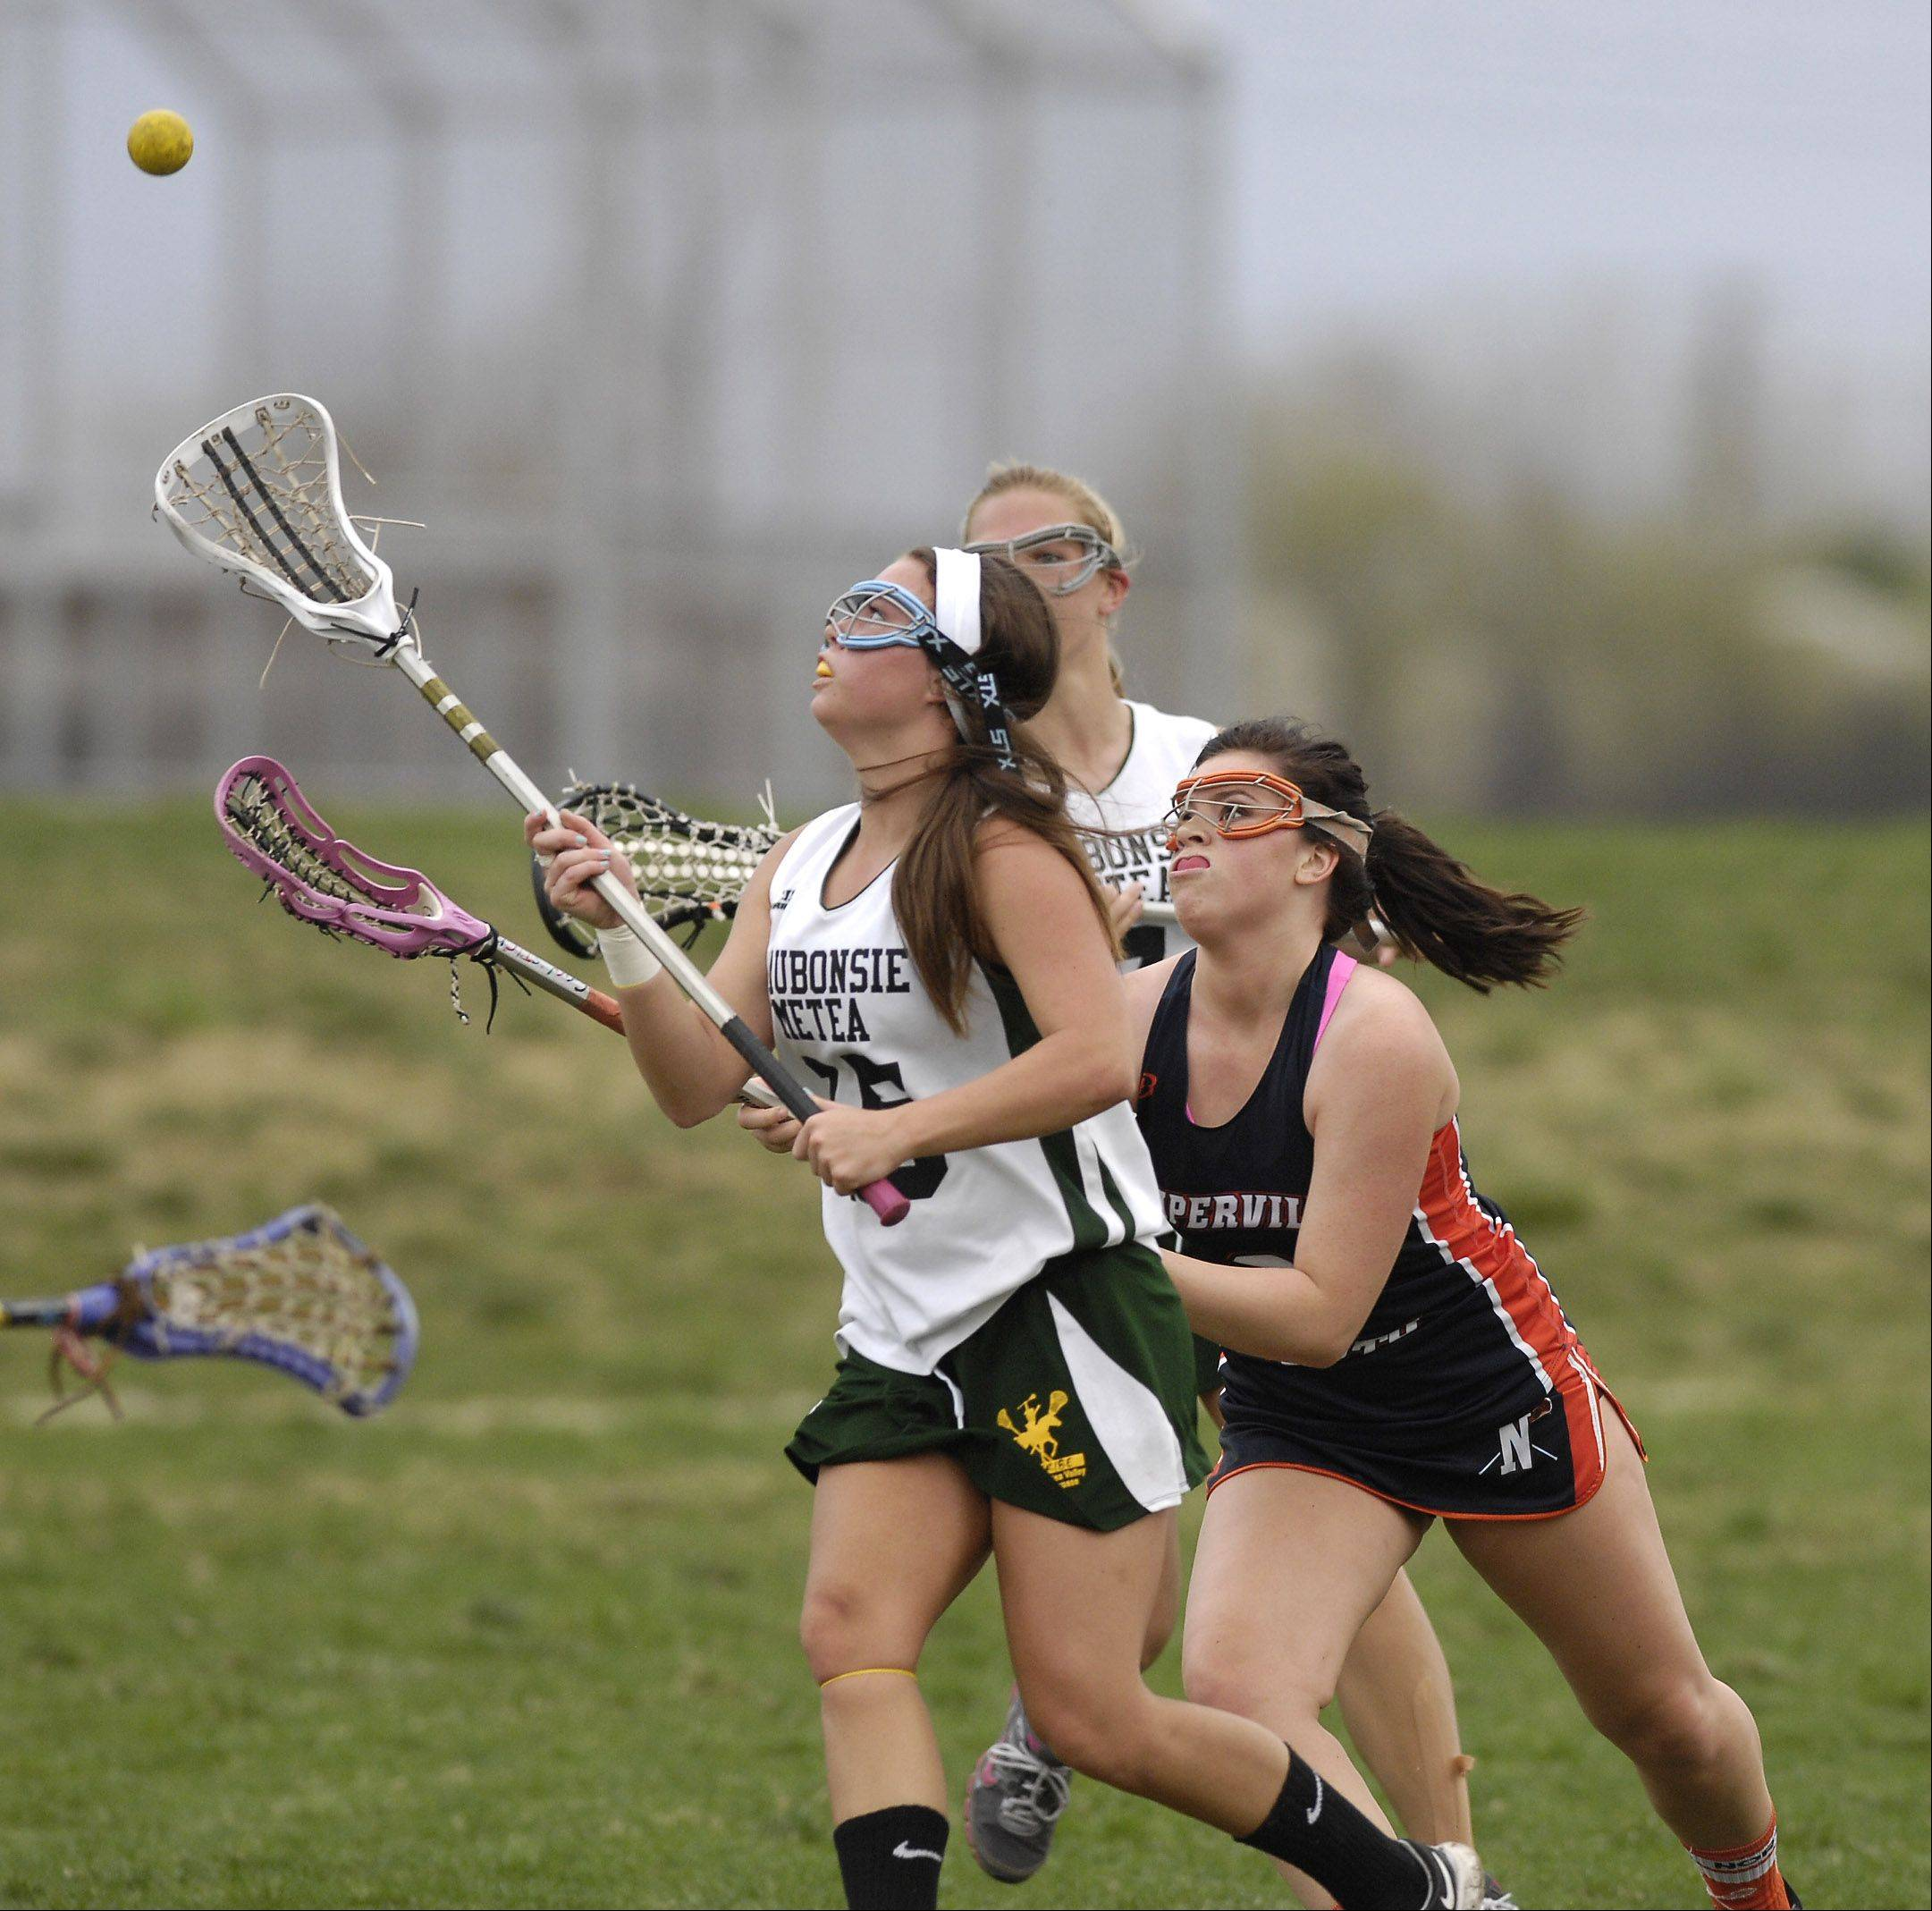 Olivia Javornik Waubonsie/Metea Valley and Izzy Kane of Naperville North battle for the ball during girls lacrosse Thursday in Aurora.